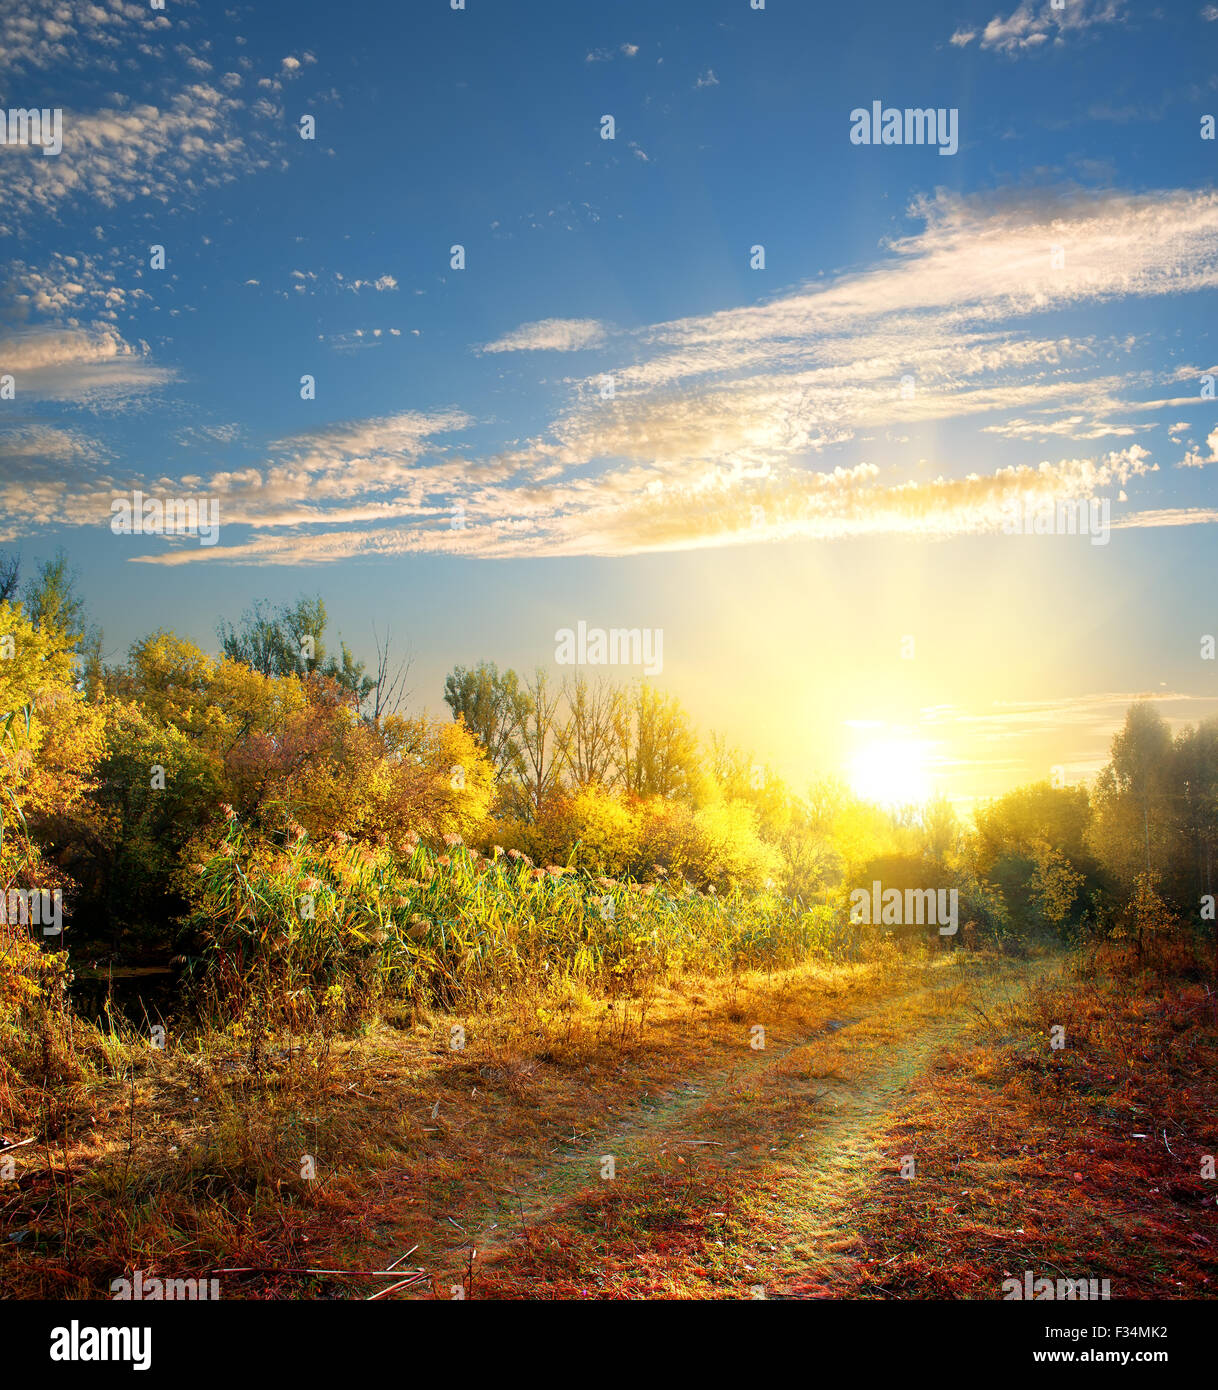 Country road in the colorful autumn forest - Stock Image